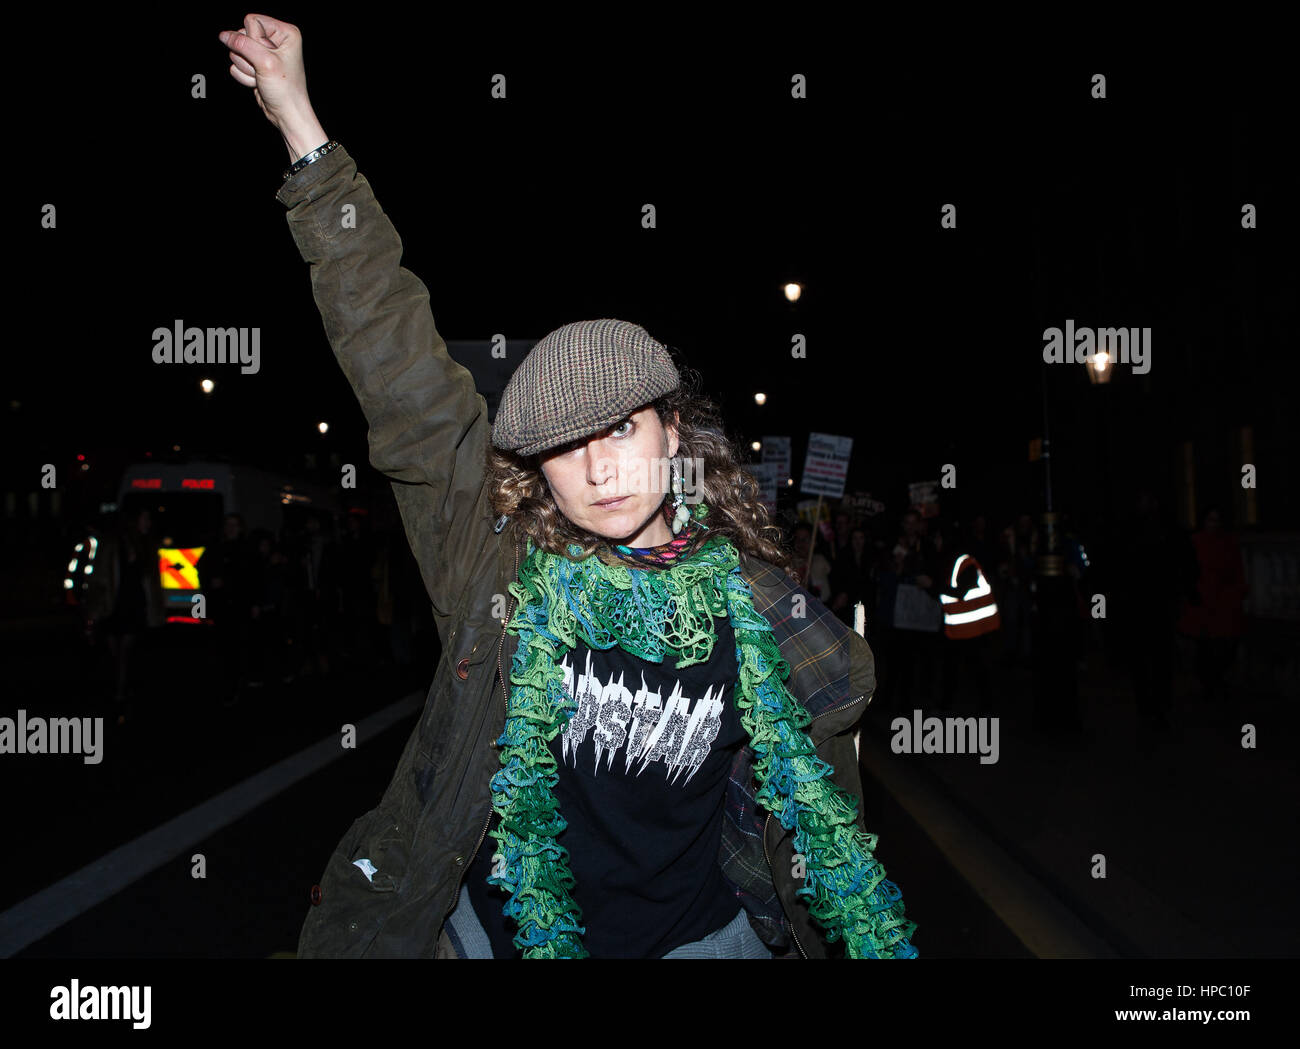 London, UK. 20th Feb, 2017. An anti Trump protester at demonstration at Parliament Square and Whitehall. Protesters - Stock Image